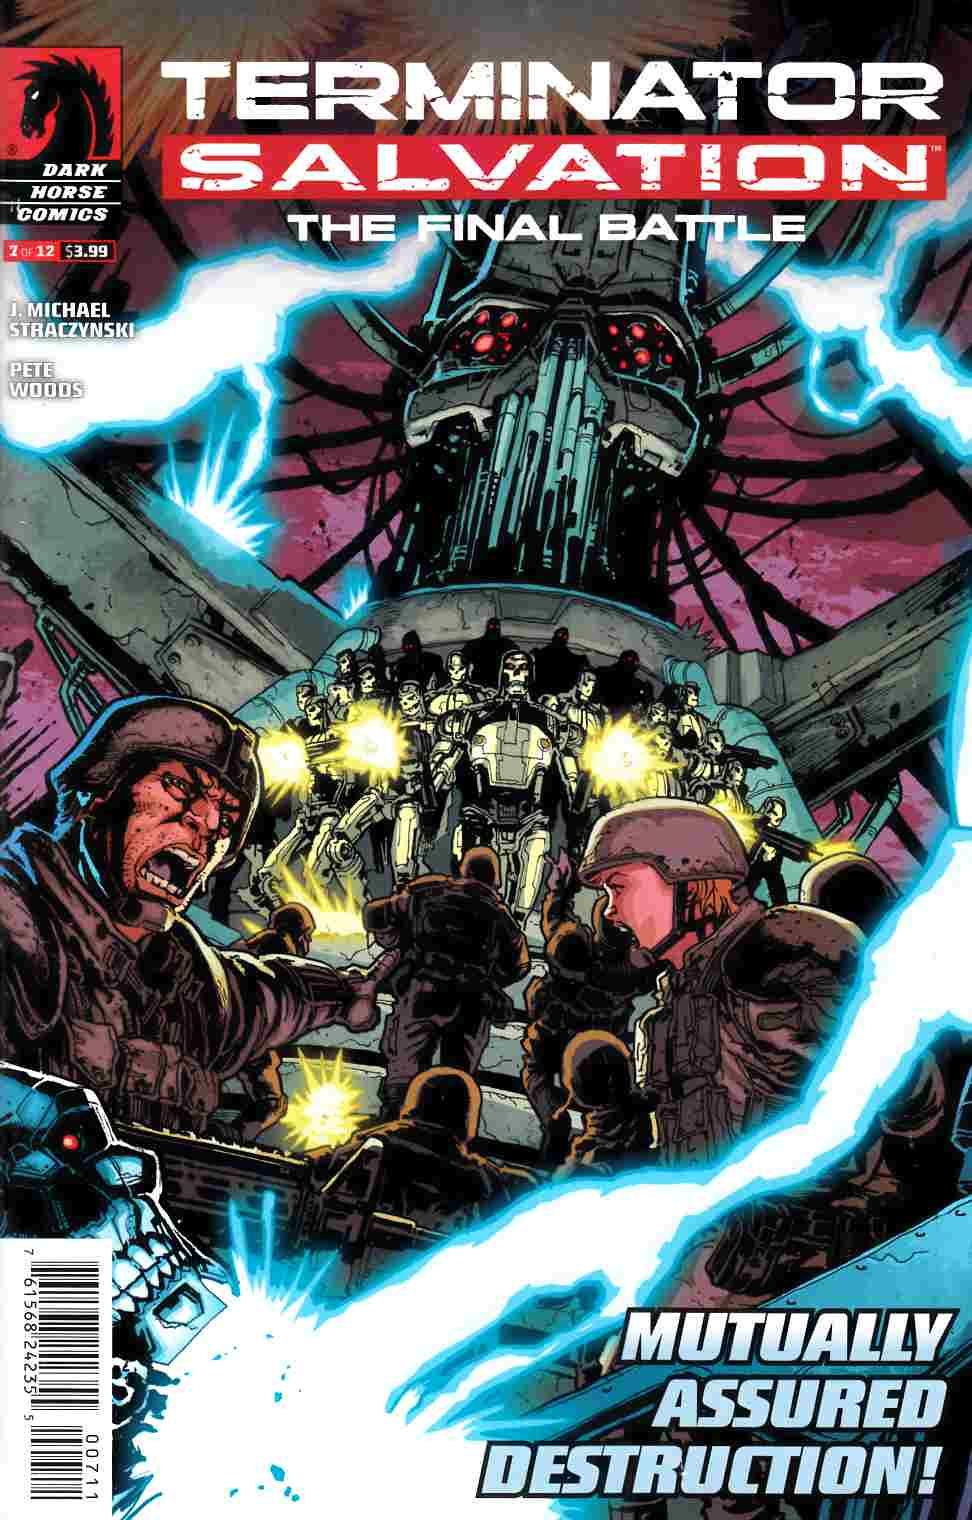 Terminator Salvation Final Battle #7 [Comic] THUMBNAIL